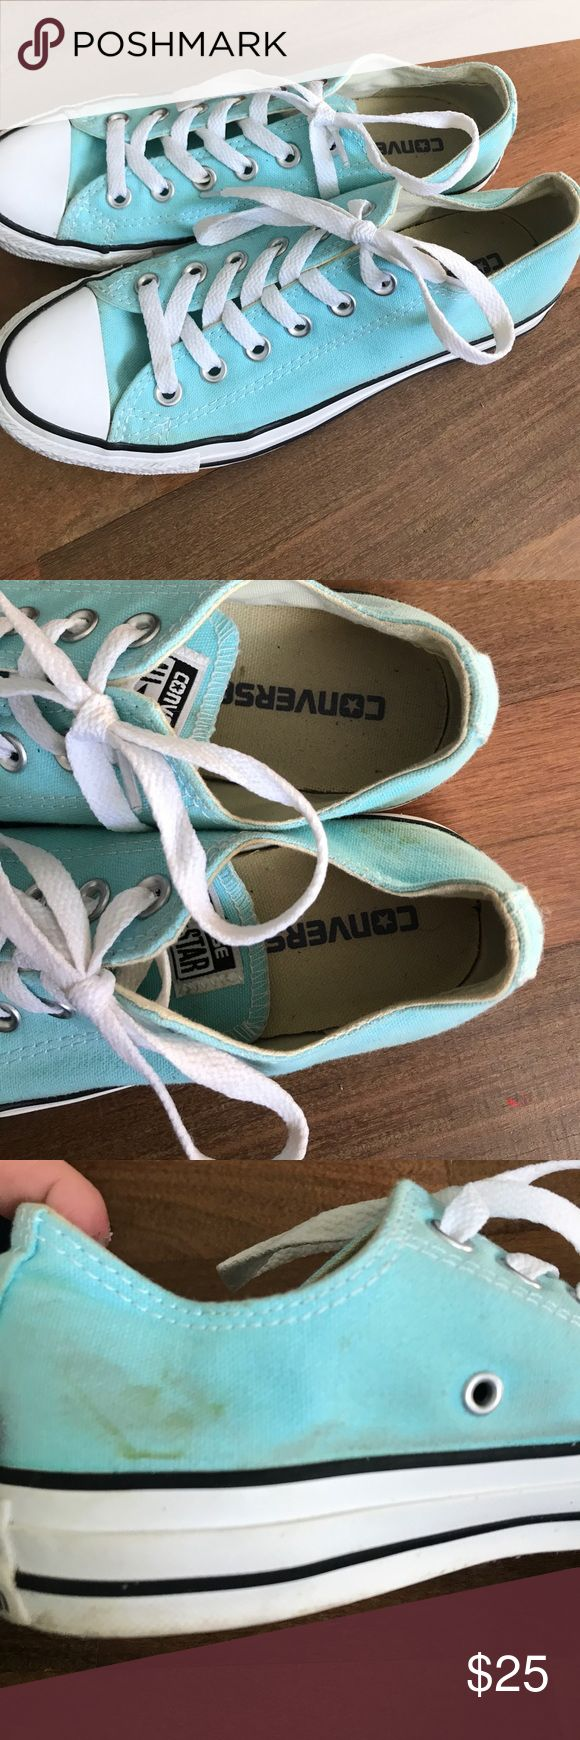 Tiffany blue converse Tiffany blue converse. Slight grass stain pictured. Very good condition Converse Shoes Sneakers